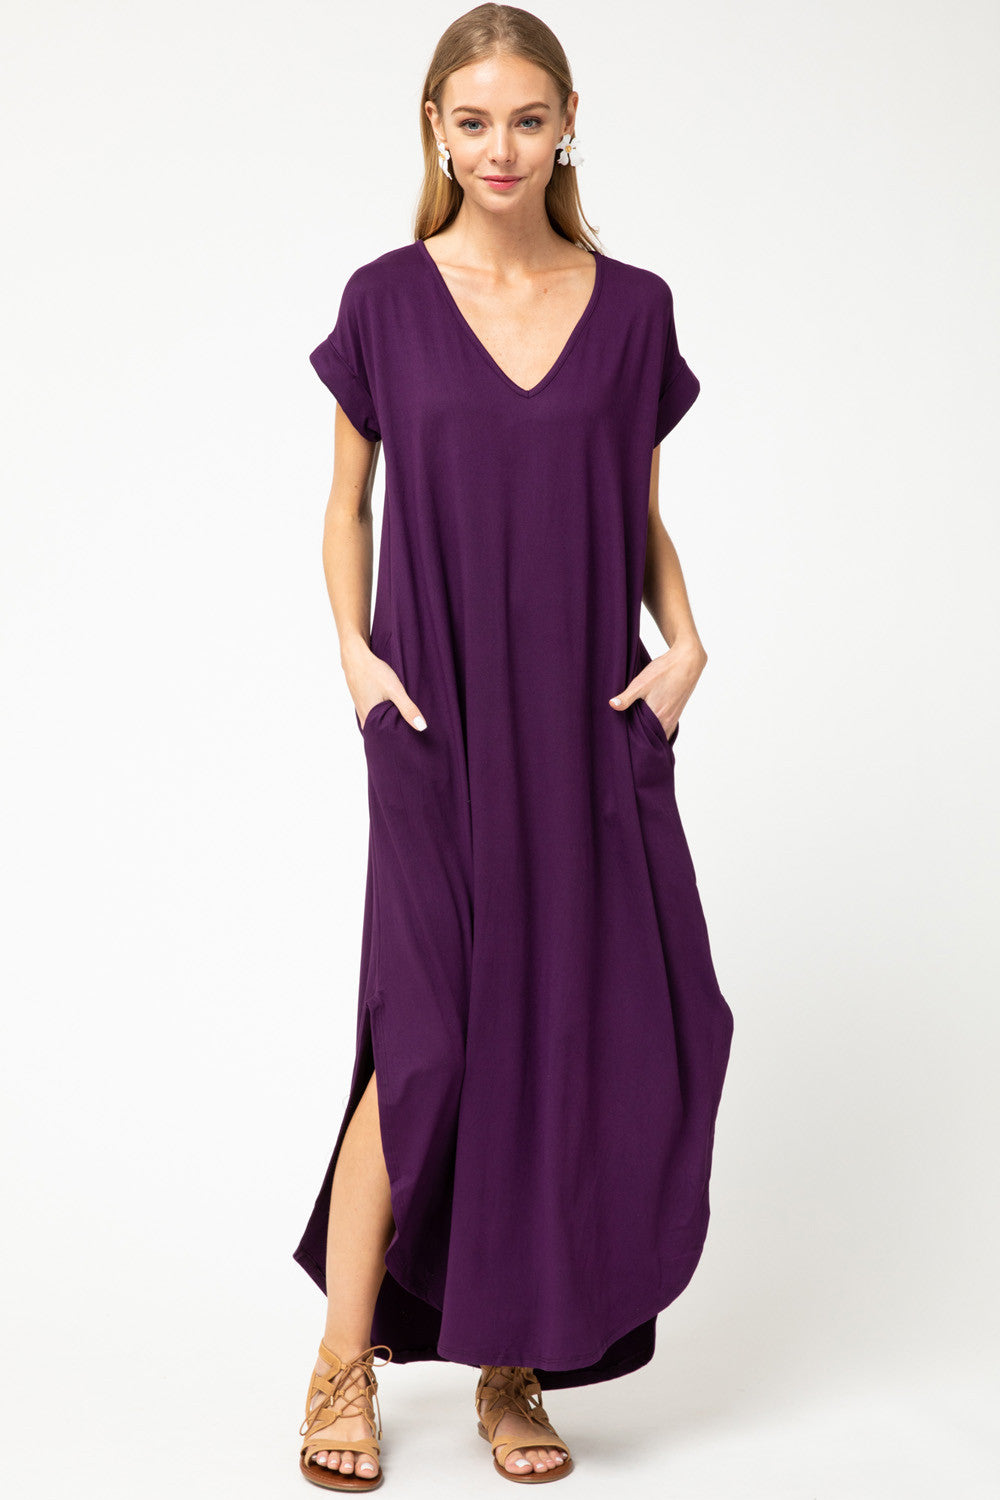 LAST CALL SIZE M | Jersey Knit Maxi Dress in Plum